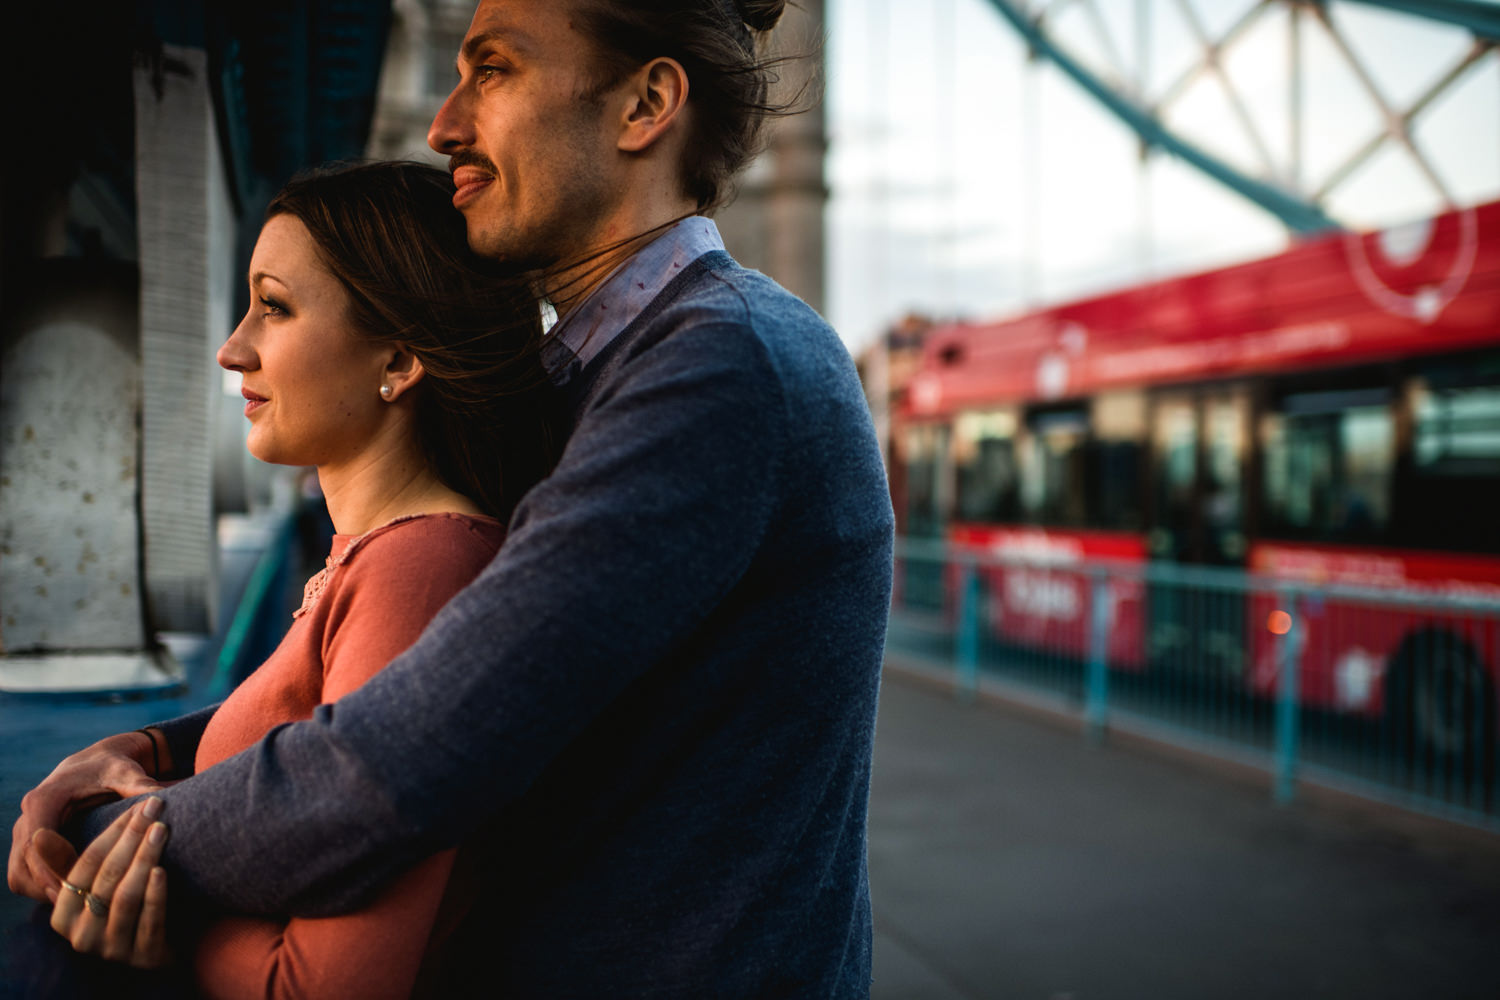 London Engagement Photography - Couple on Tower Bridge